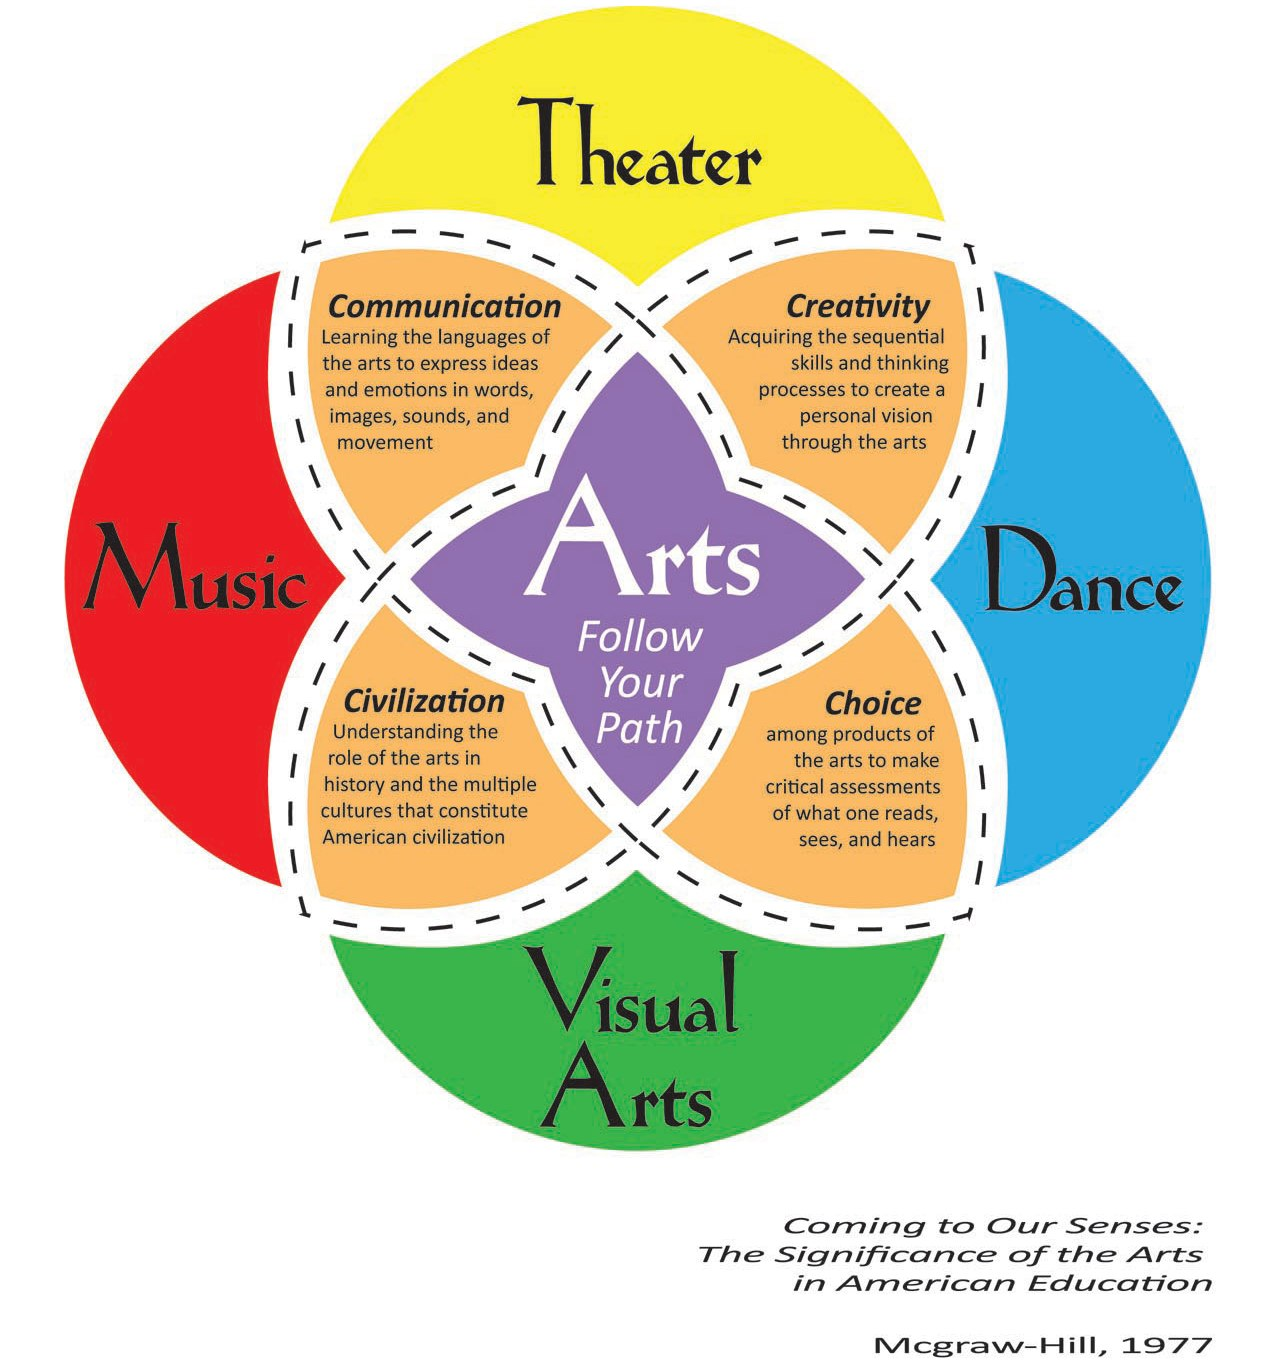 understanding the liberal arts education model The value of a liberal arts education goes far beyond its economic value graduates understand problems, generate solutions, and communicate those solutions to others in many ways, a liberal arts education is education for life.